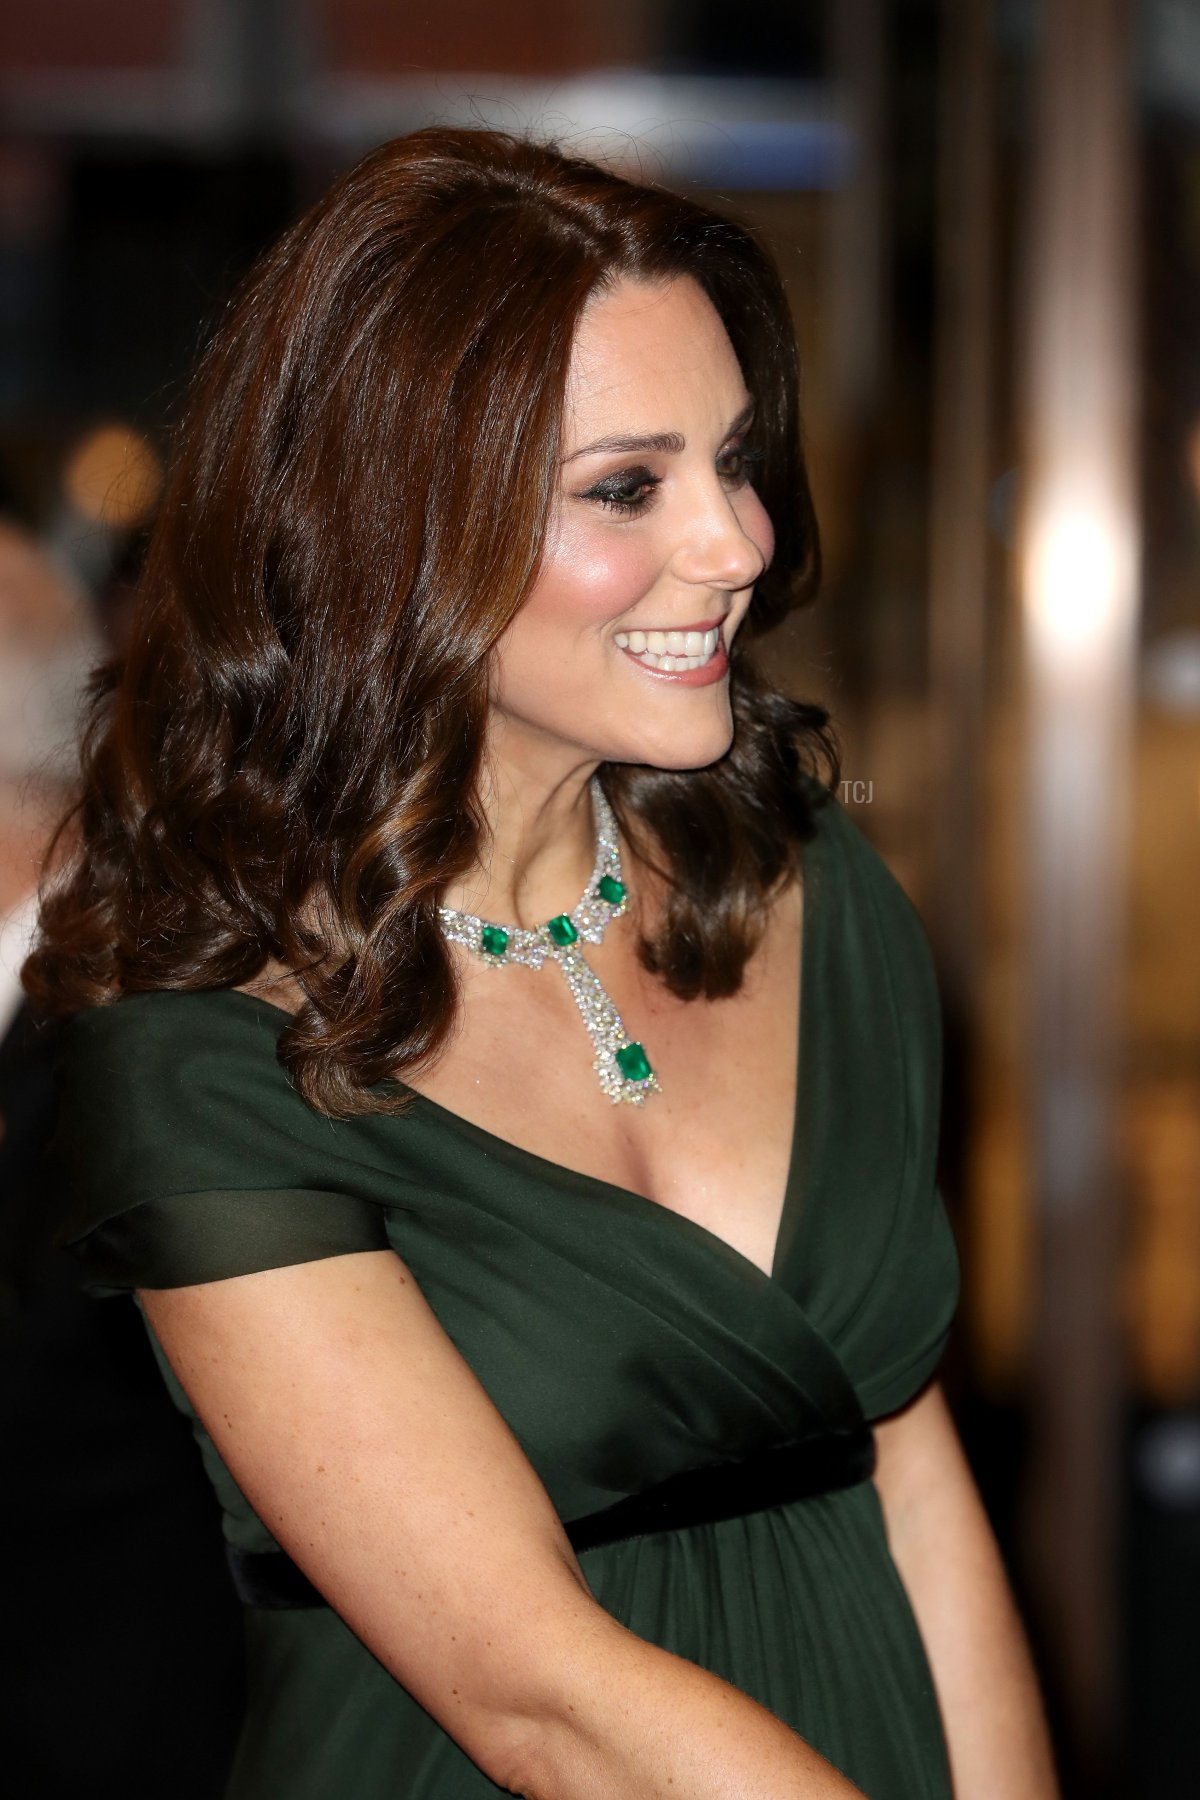 The Duchess of Cambridge smiles as she attends the BAFTA British Academy Film Awards at the Royal Albert Hall in London on February 18, 2018